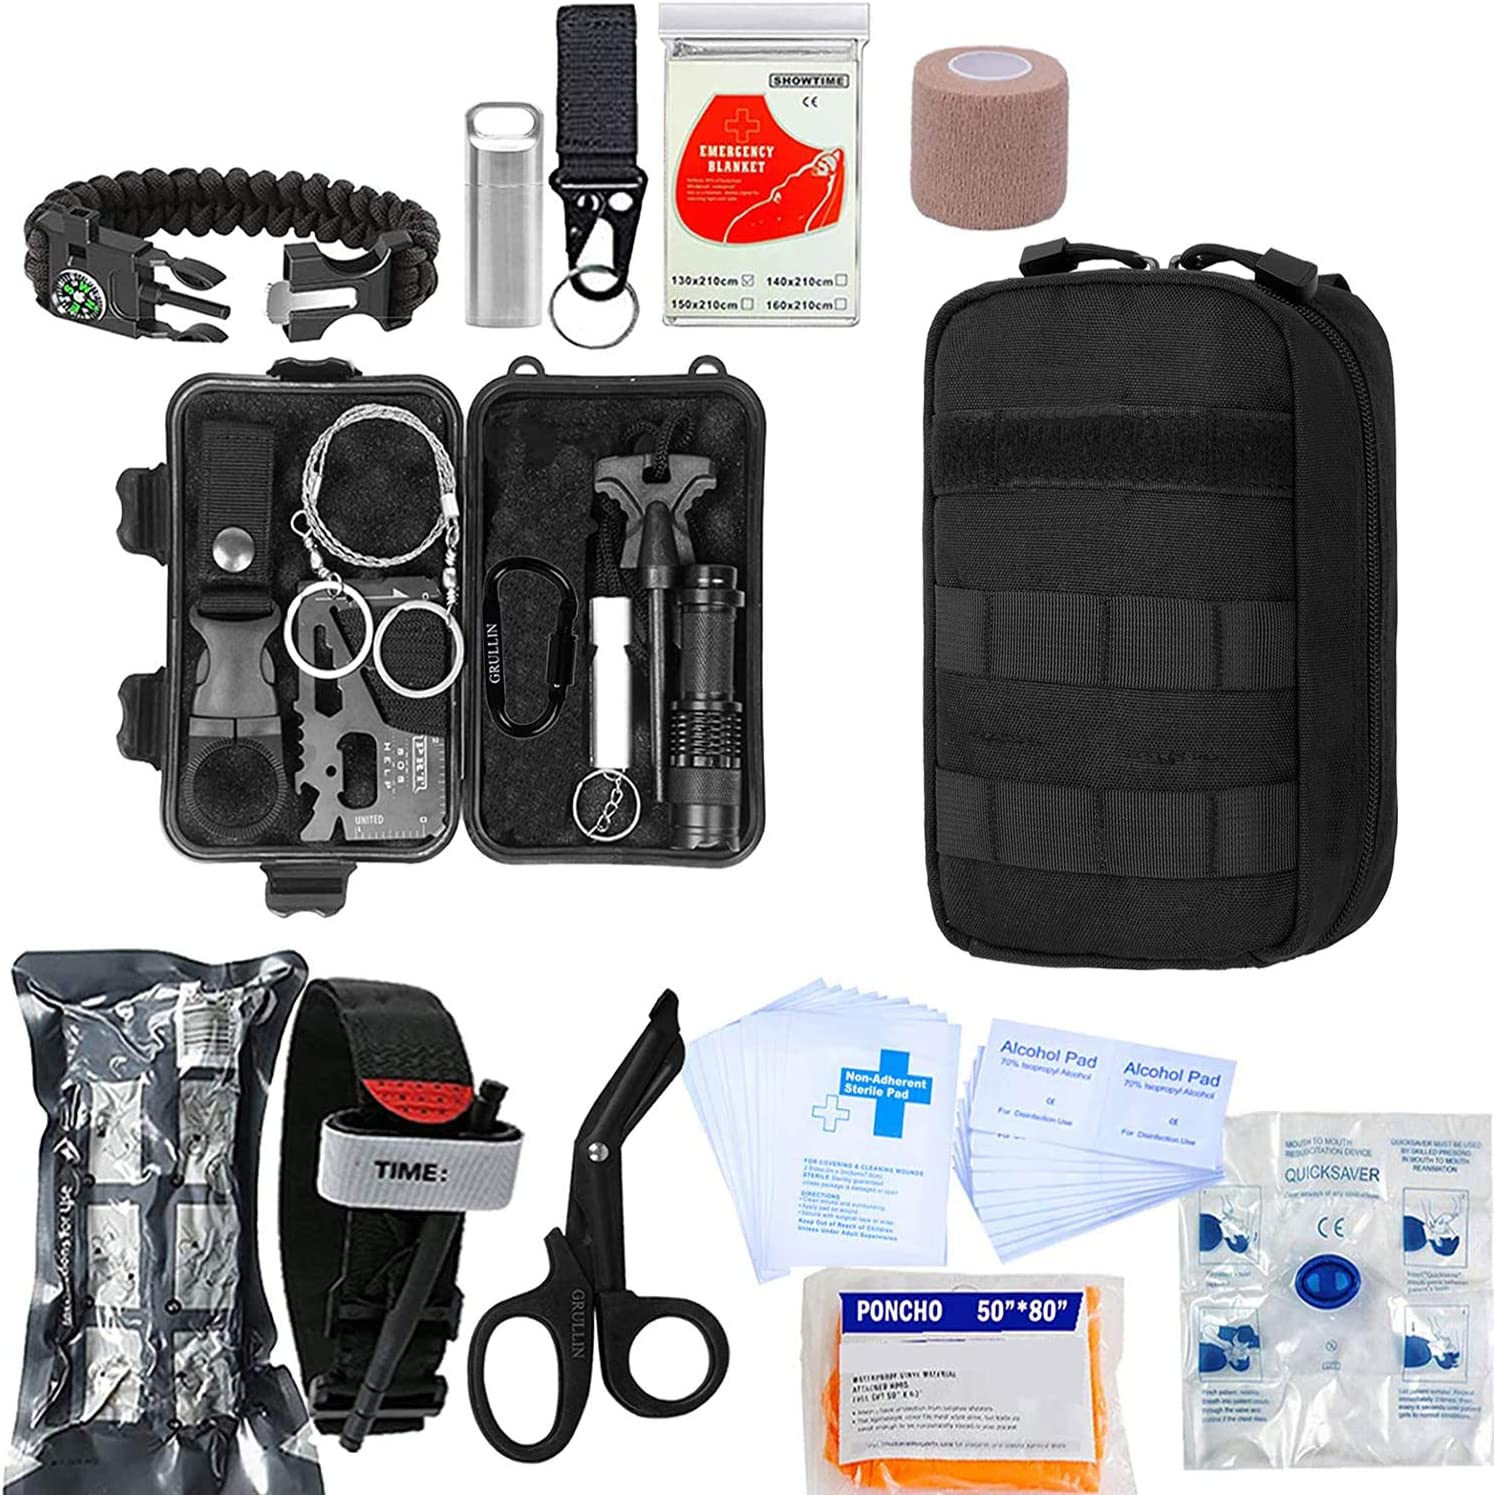 GRULLIN Emergency Survival First Aid Kit, 50 in 1 Multi-Purpose ...